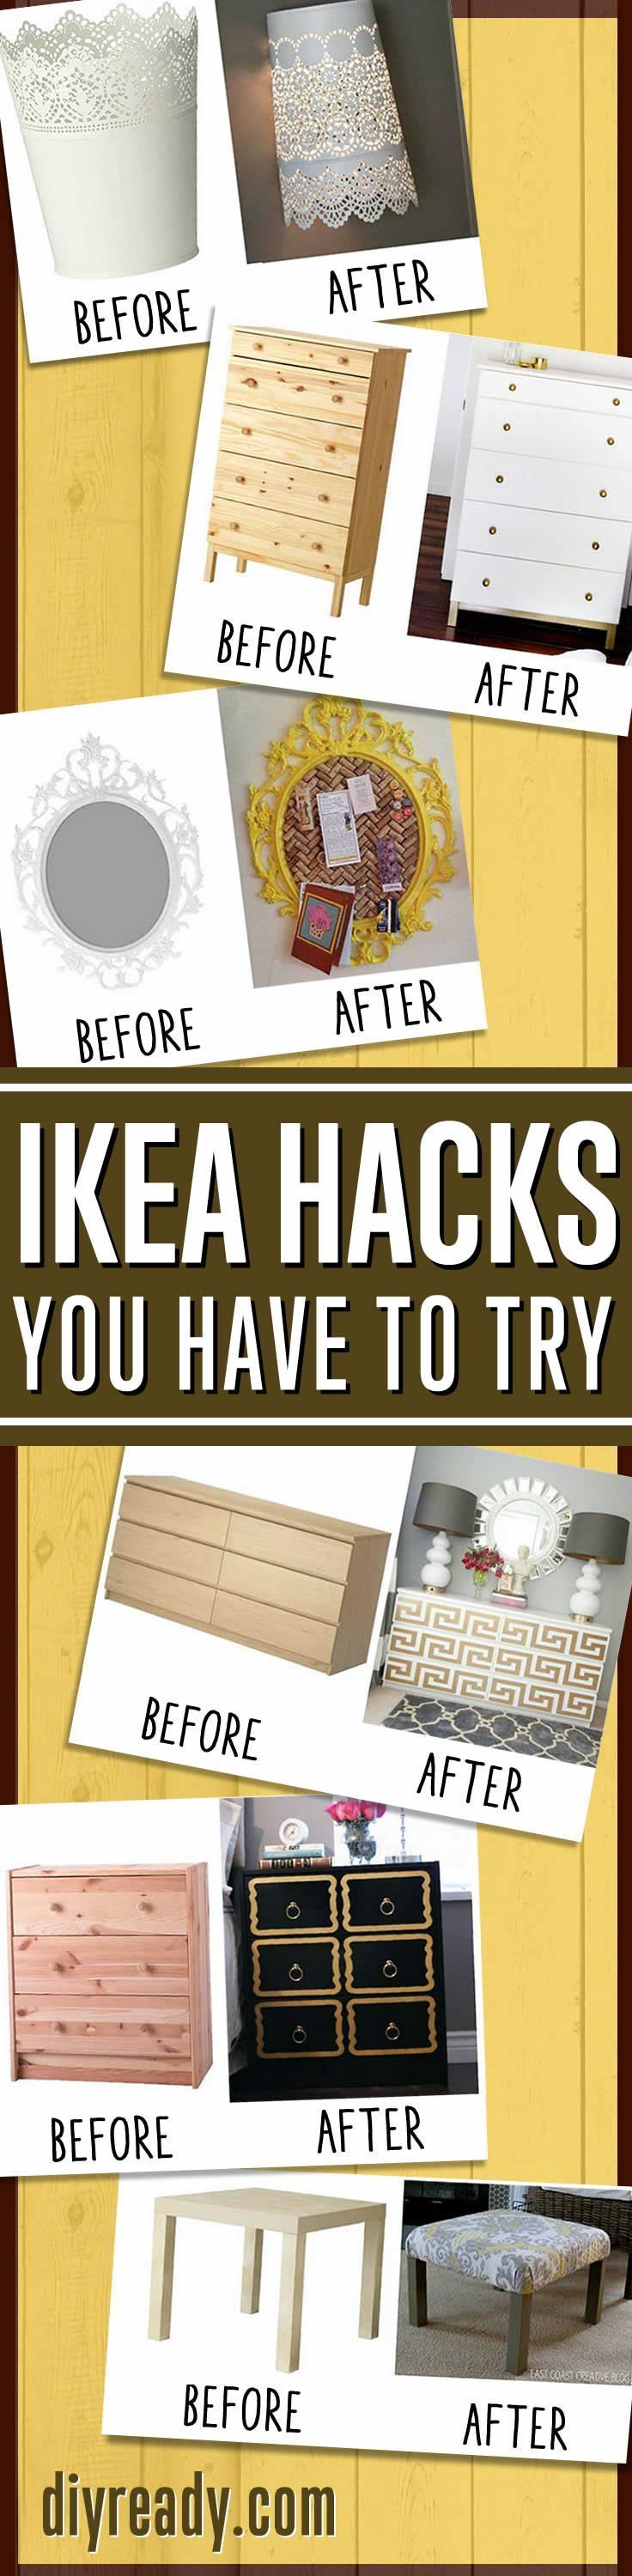 17 best images about ikea comes to memphis on pinterest cabinets for bathrooms secretary. Black Bedroom Furniture Sets. Home Design Ideas